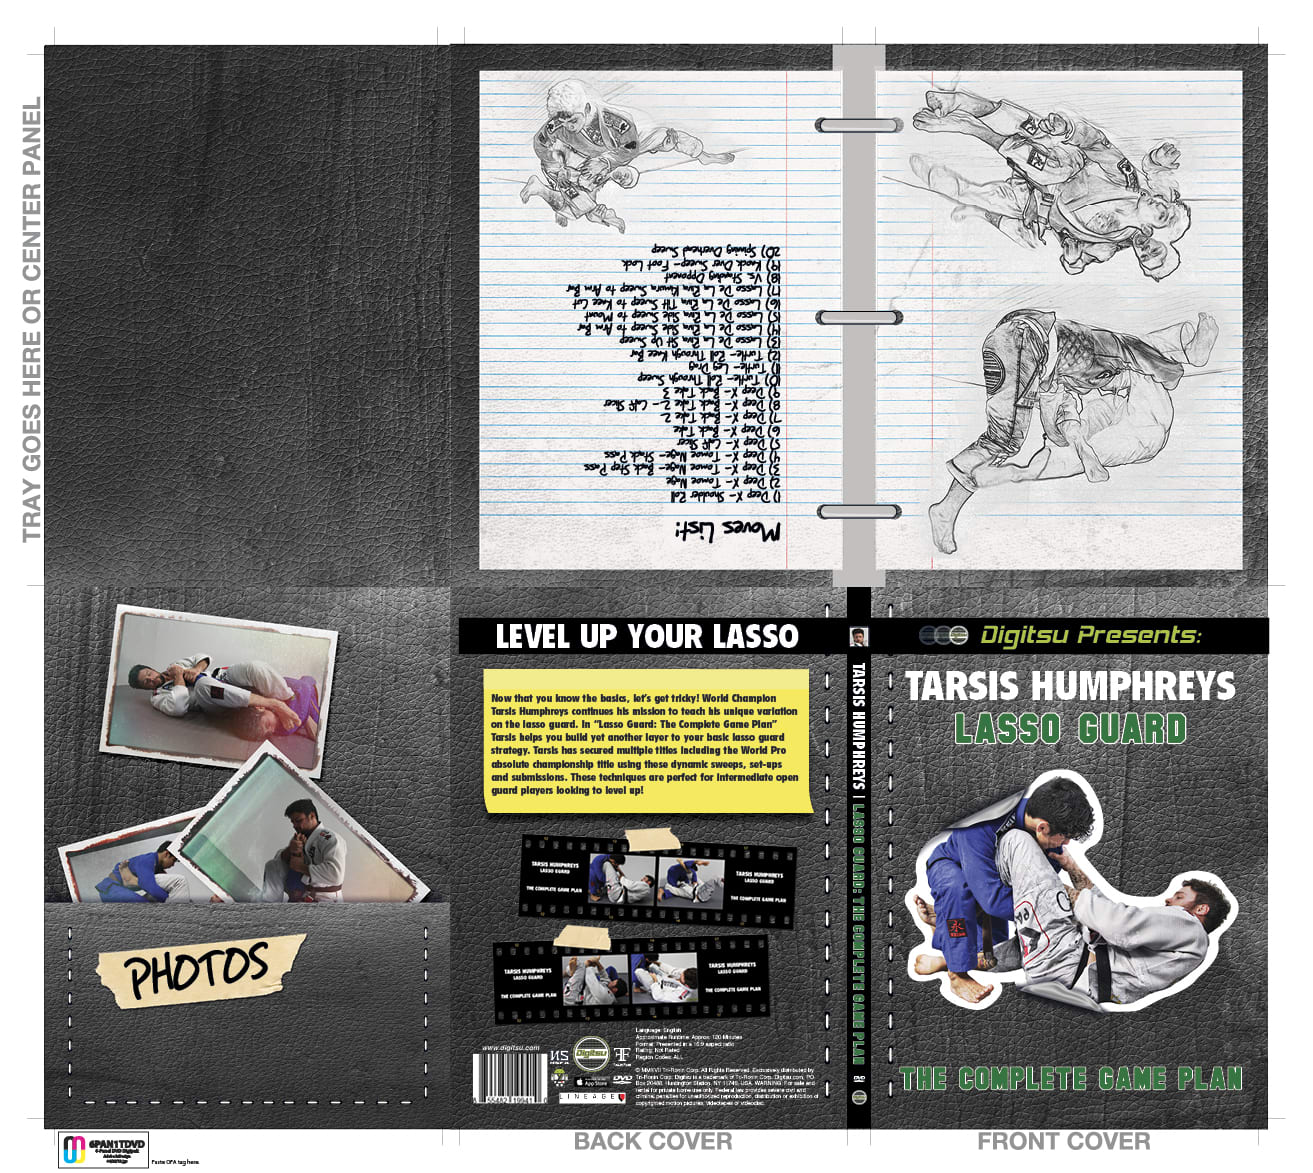 Tarsis Humphrey's-Lasso Guard: The Complete Game Plan DVD